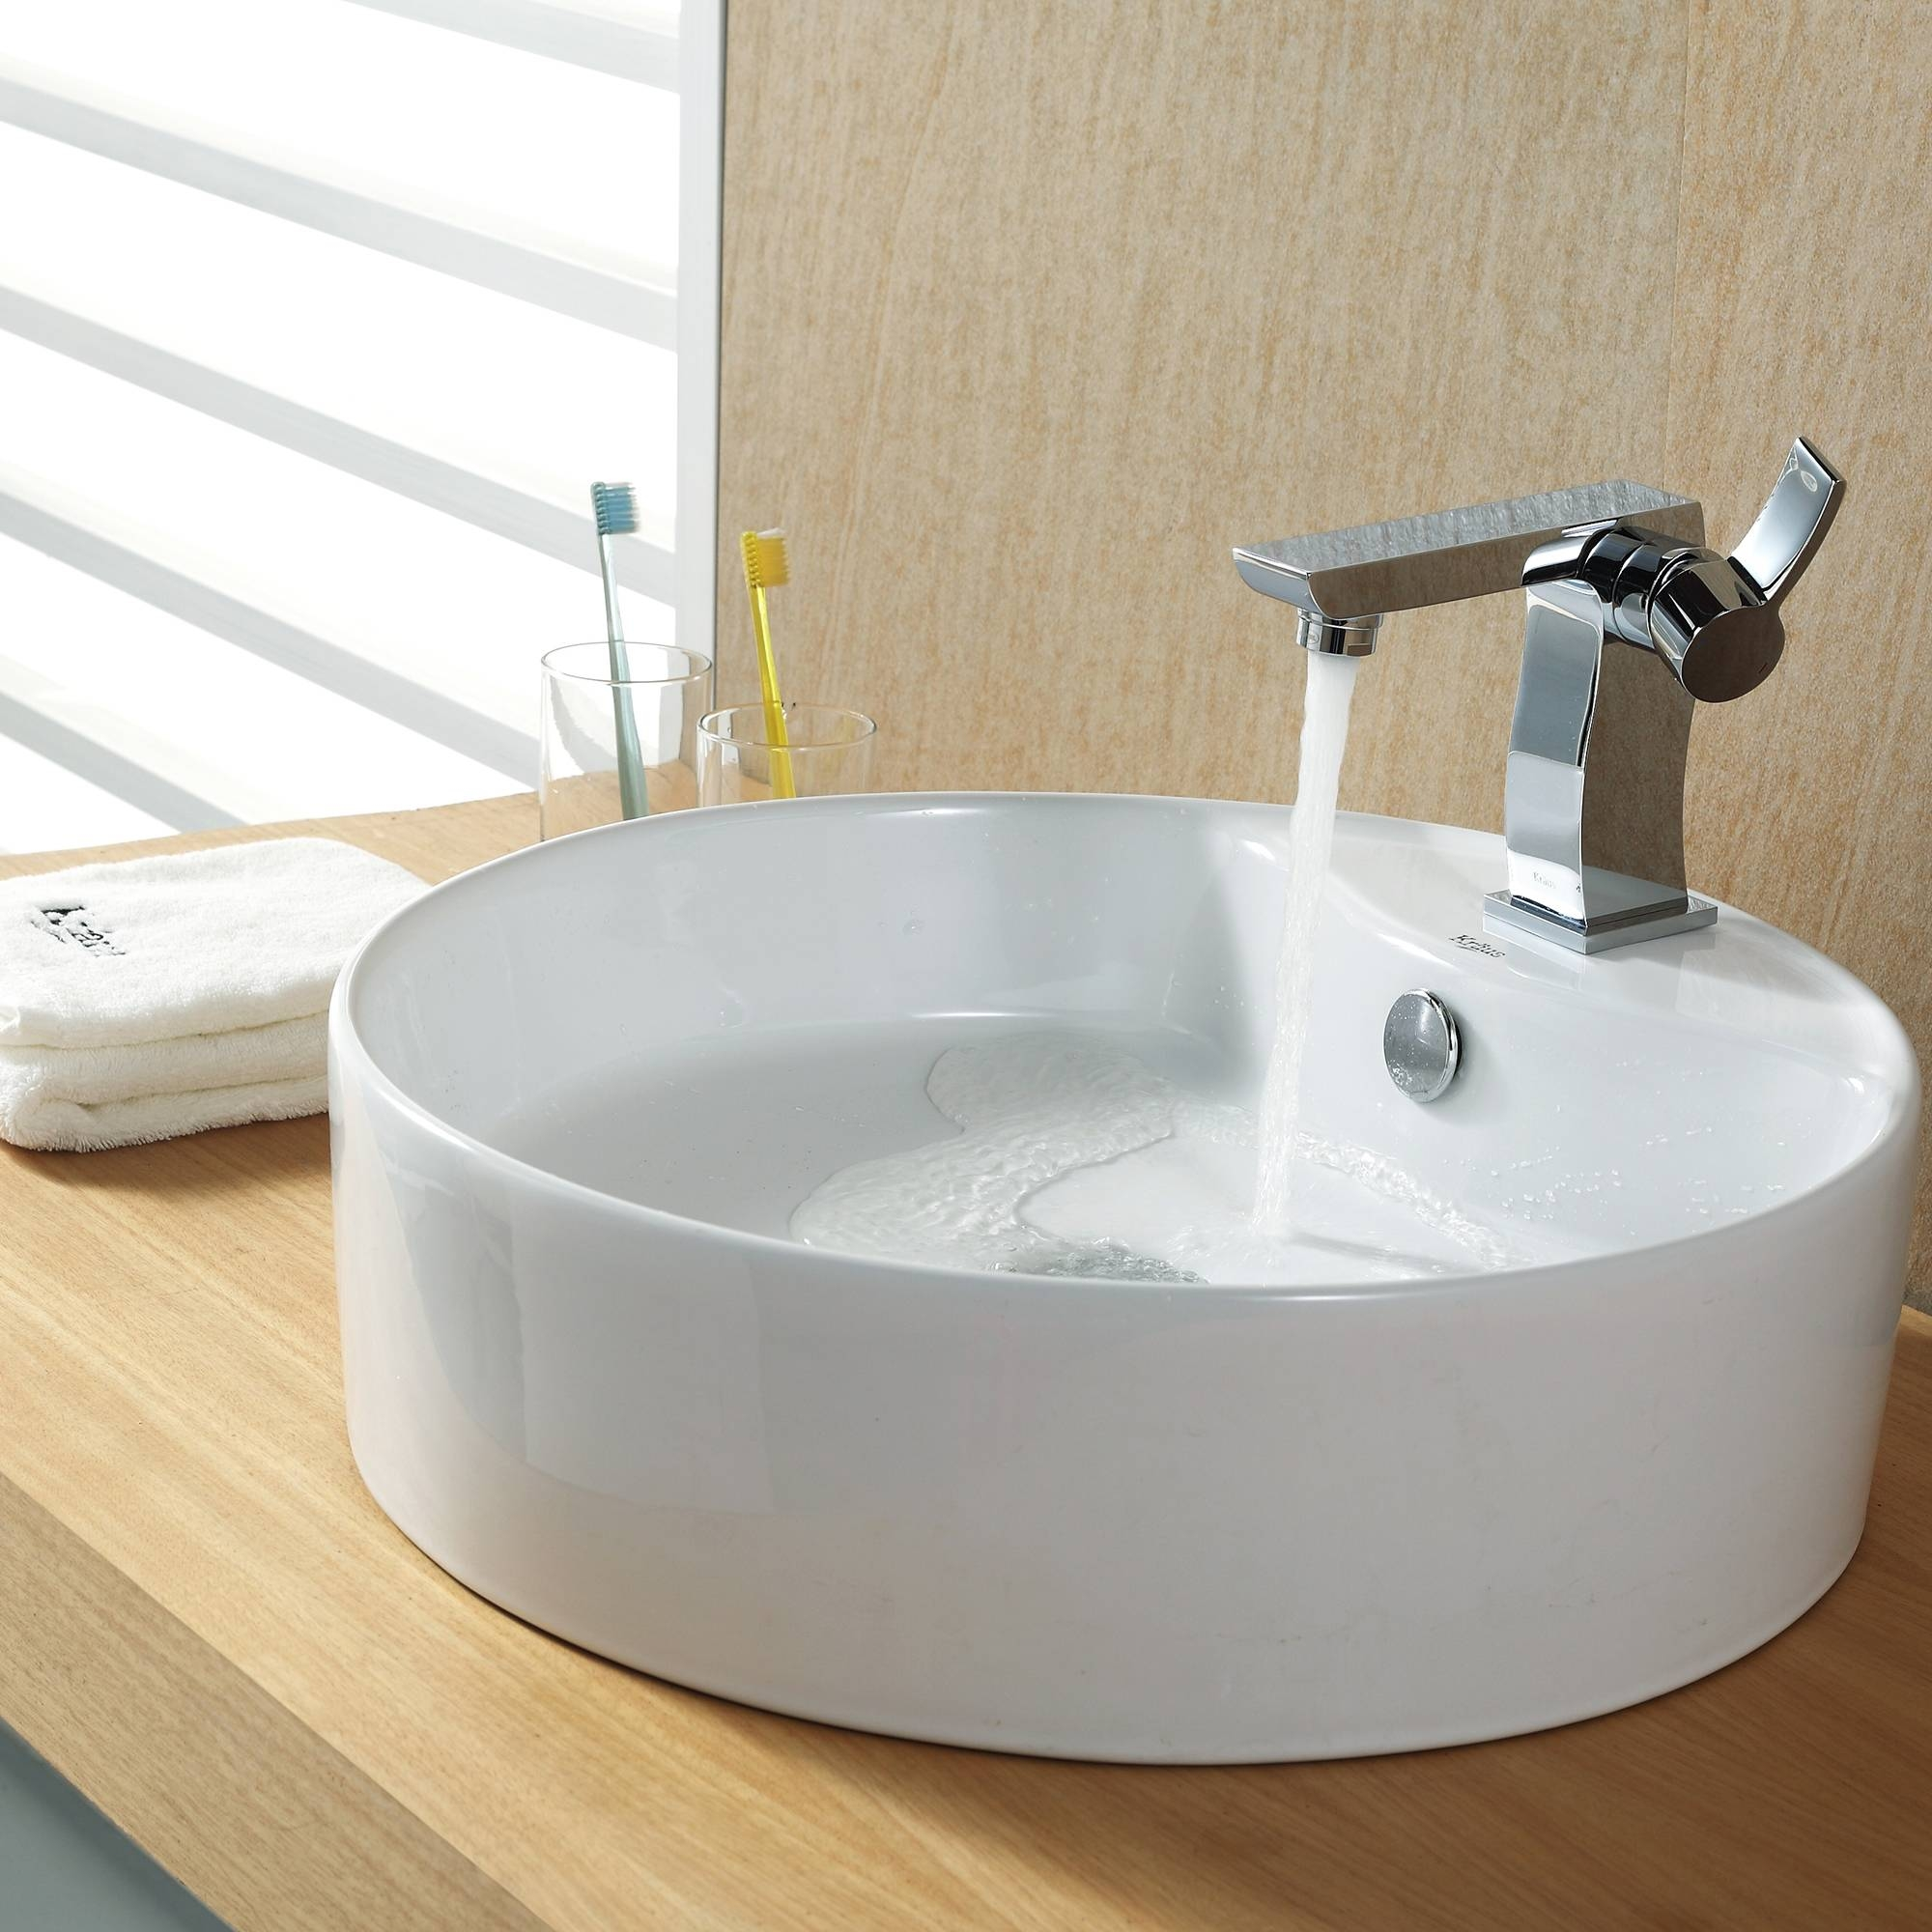 Ideas, bathroom sink and faucet sets bathroom sink and faucet sets 21 ceramic sink design ideas for kitchen and bathroom 2000 x 2000  .